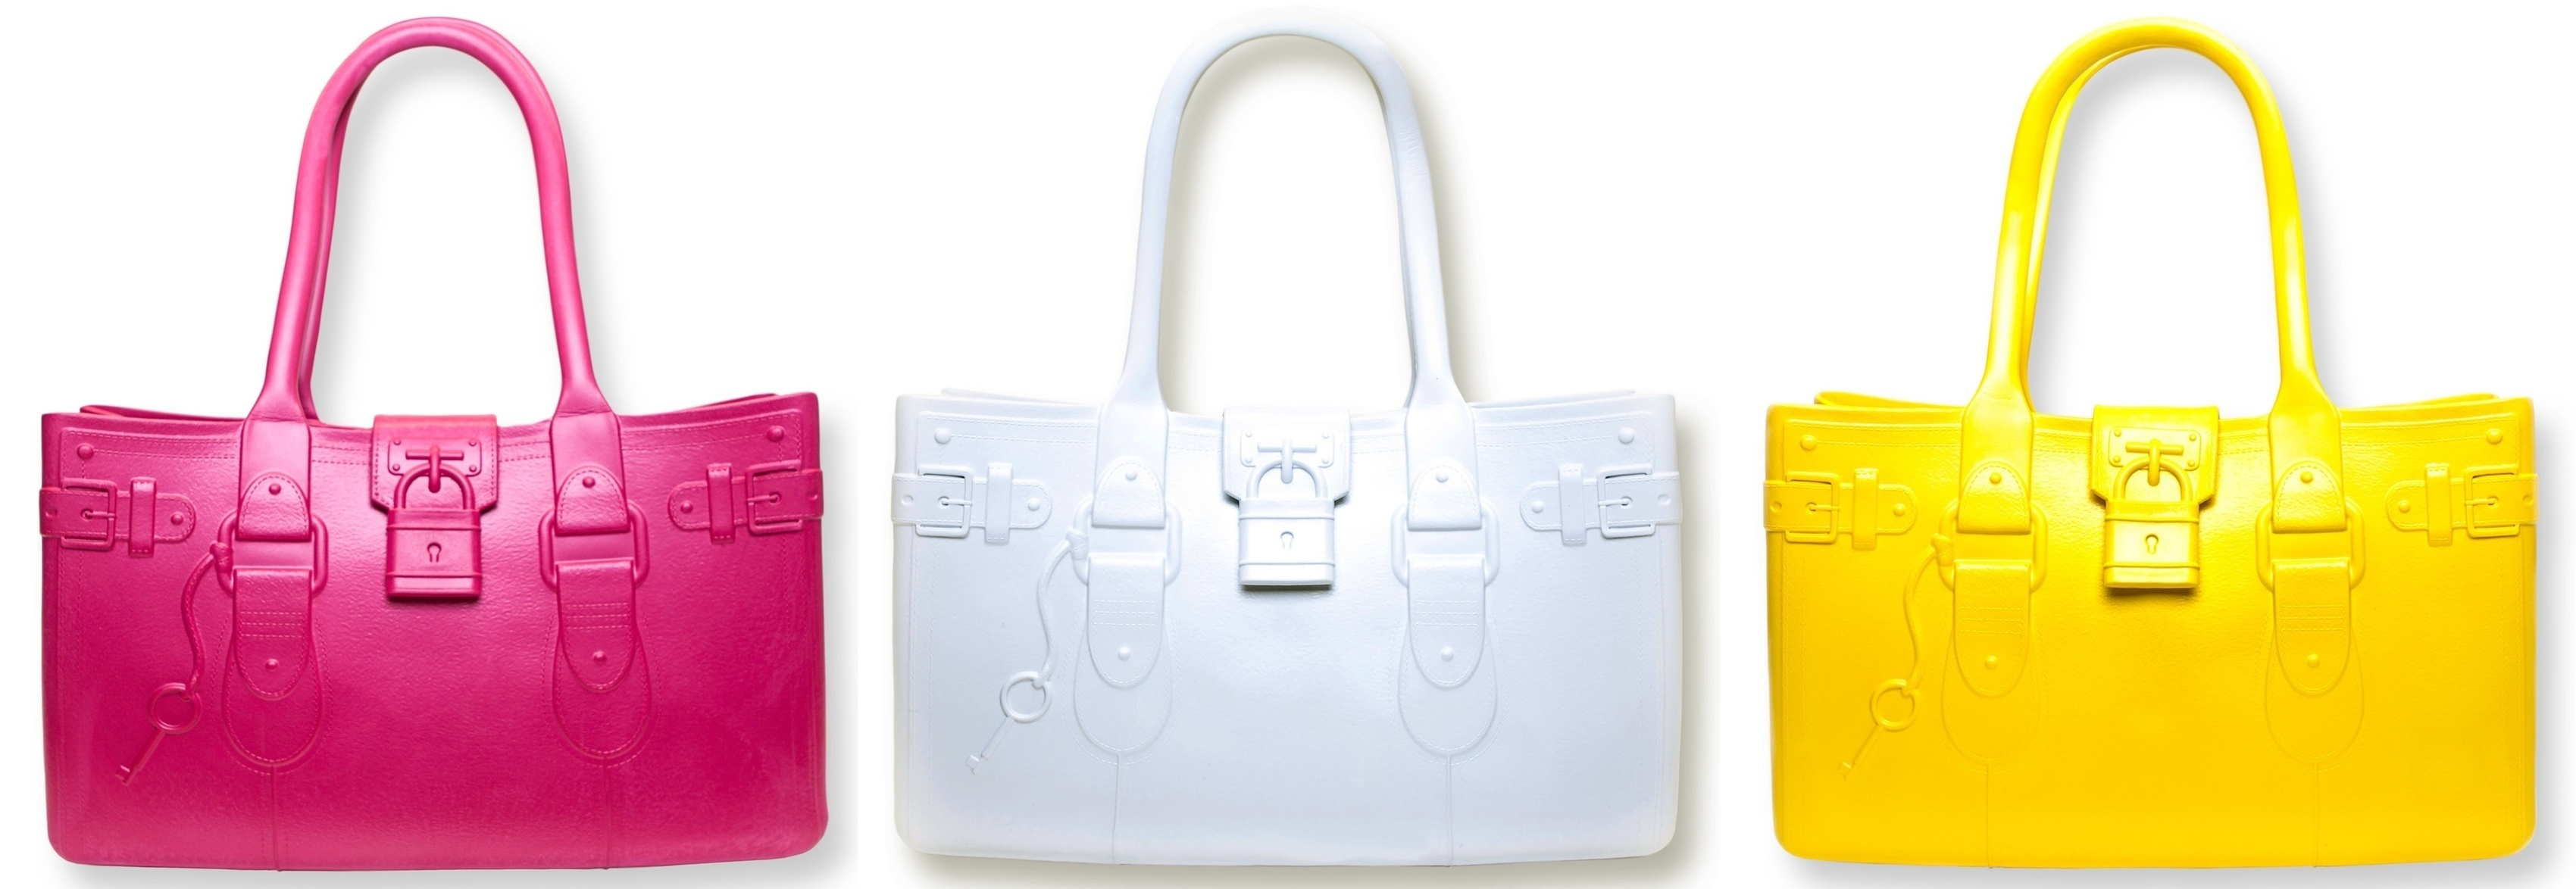 You Need a Great Bag  Robert Verdi s Great Bag ... 497c9c73c0fc2